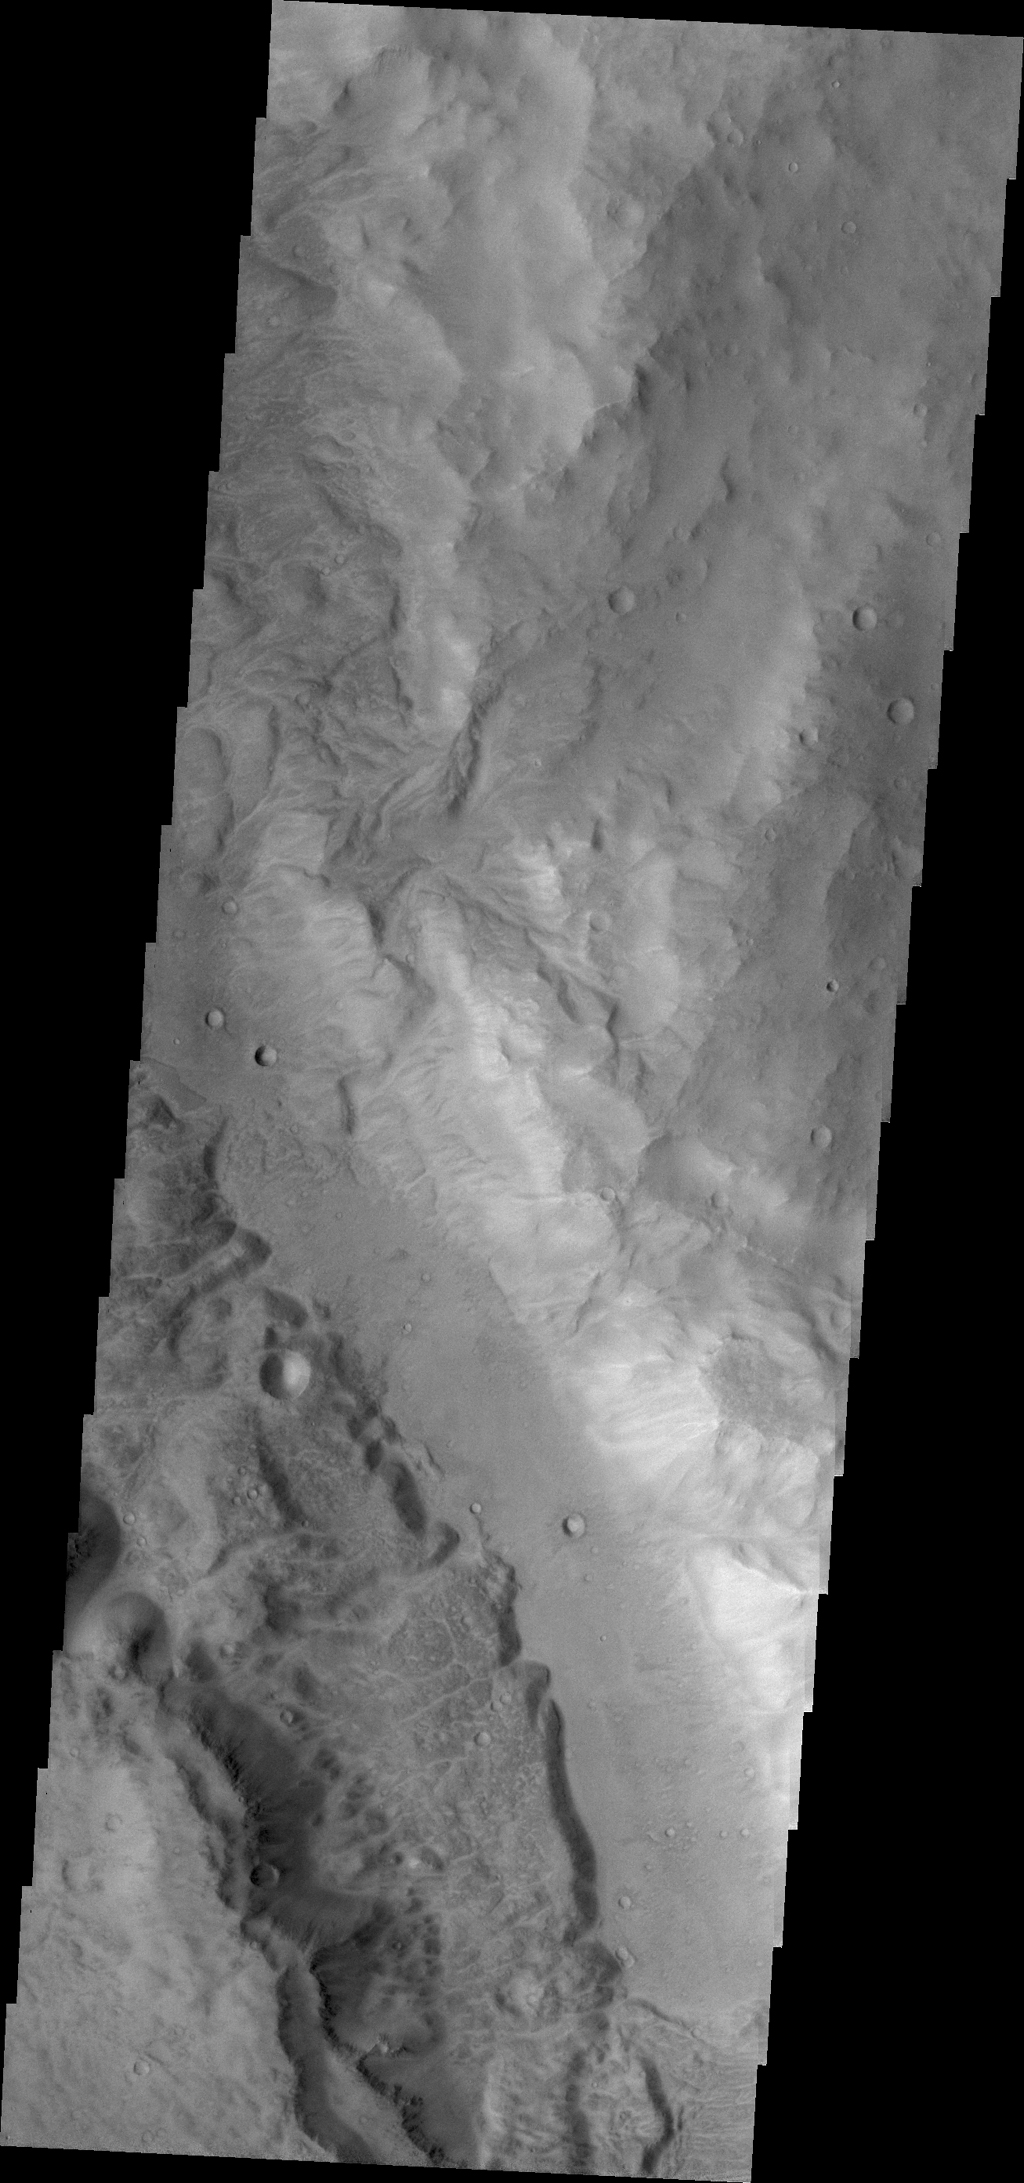 This image from NASA's 2001 Mars Odyssey spacecraft shows a small portion of Ma'adim Vallis. This channel intersects Gusev Crater, home of the Spirit Rover.